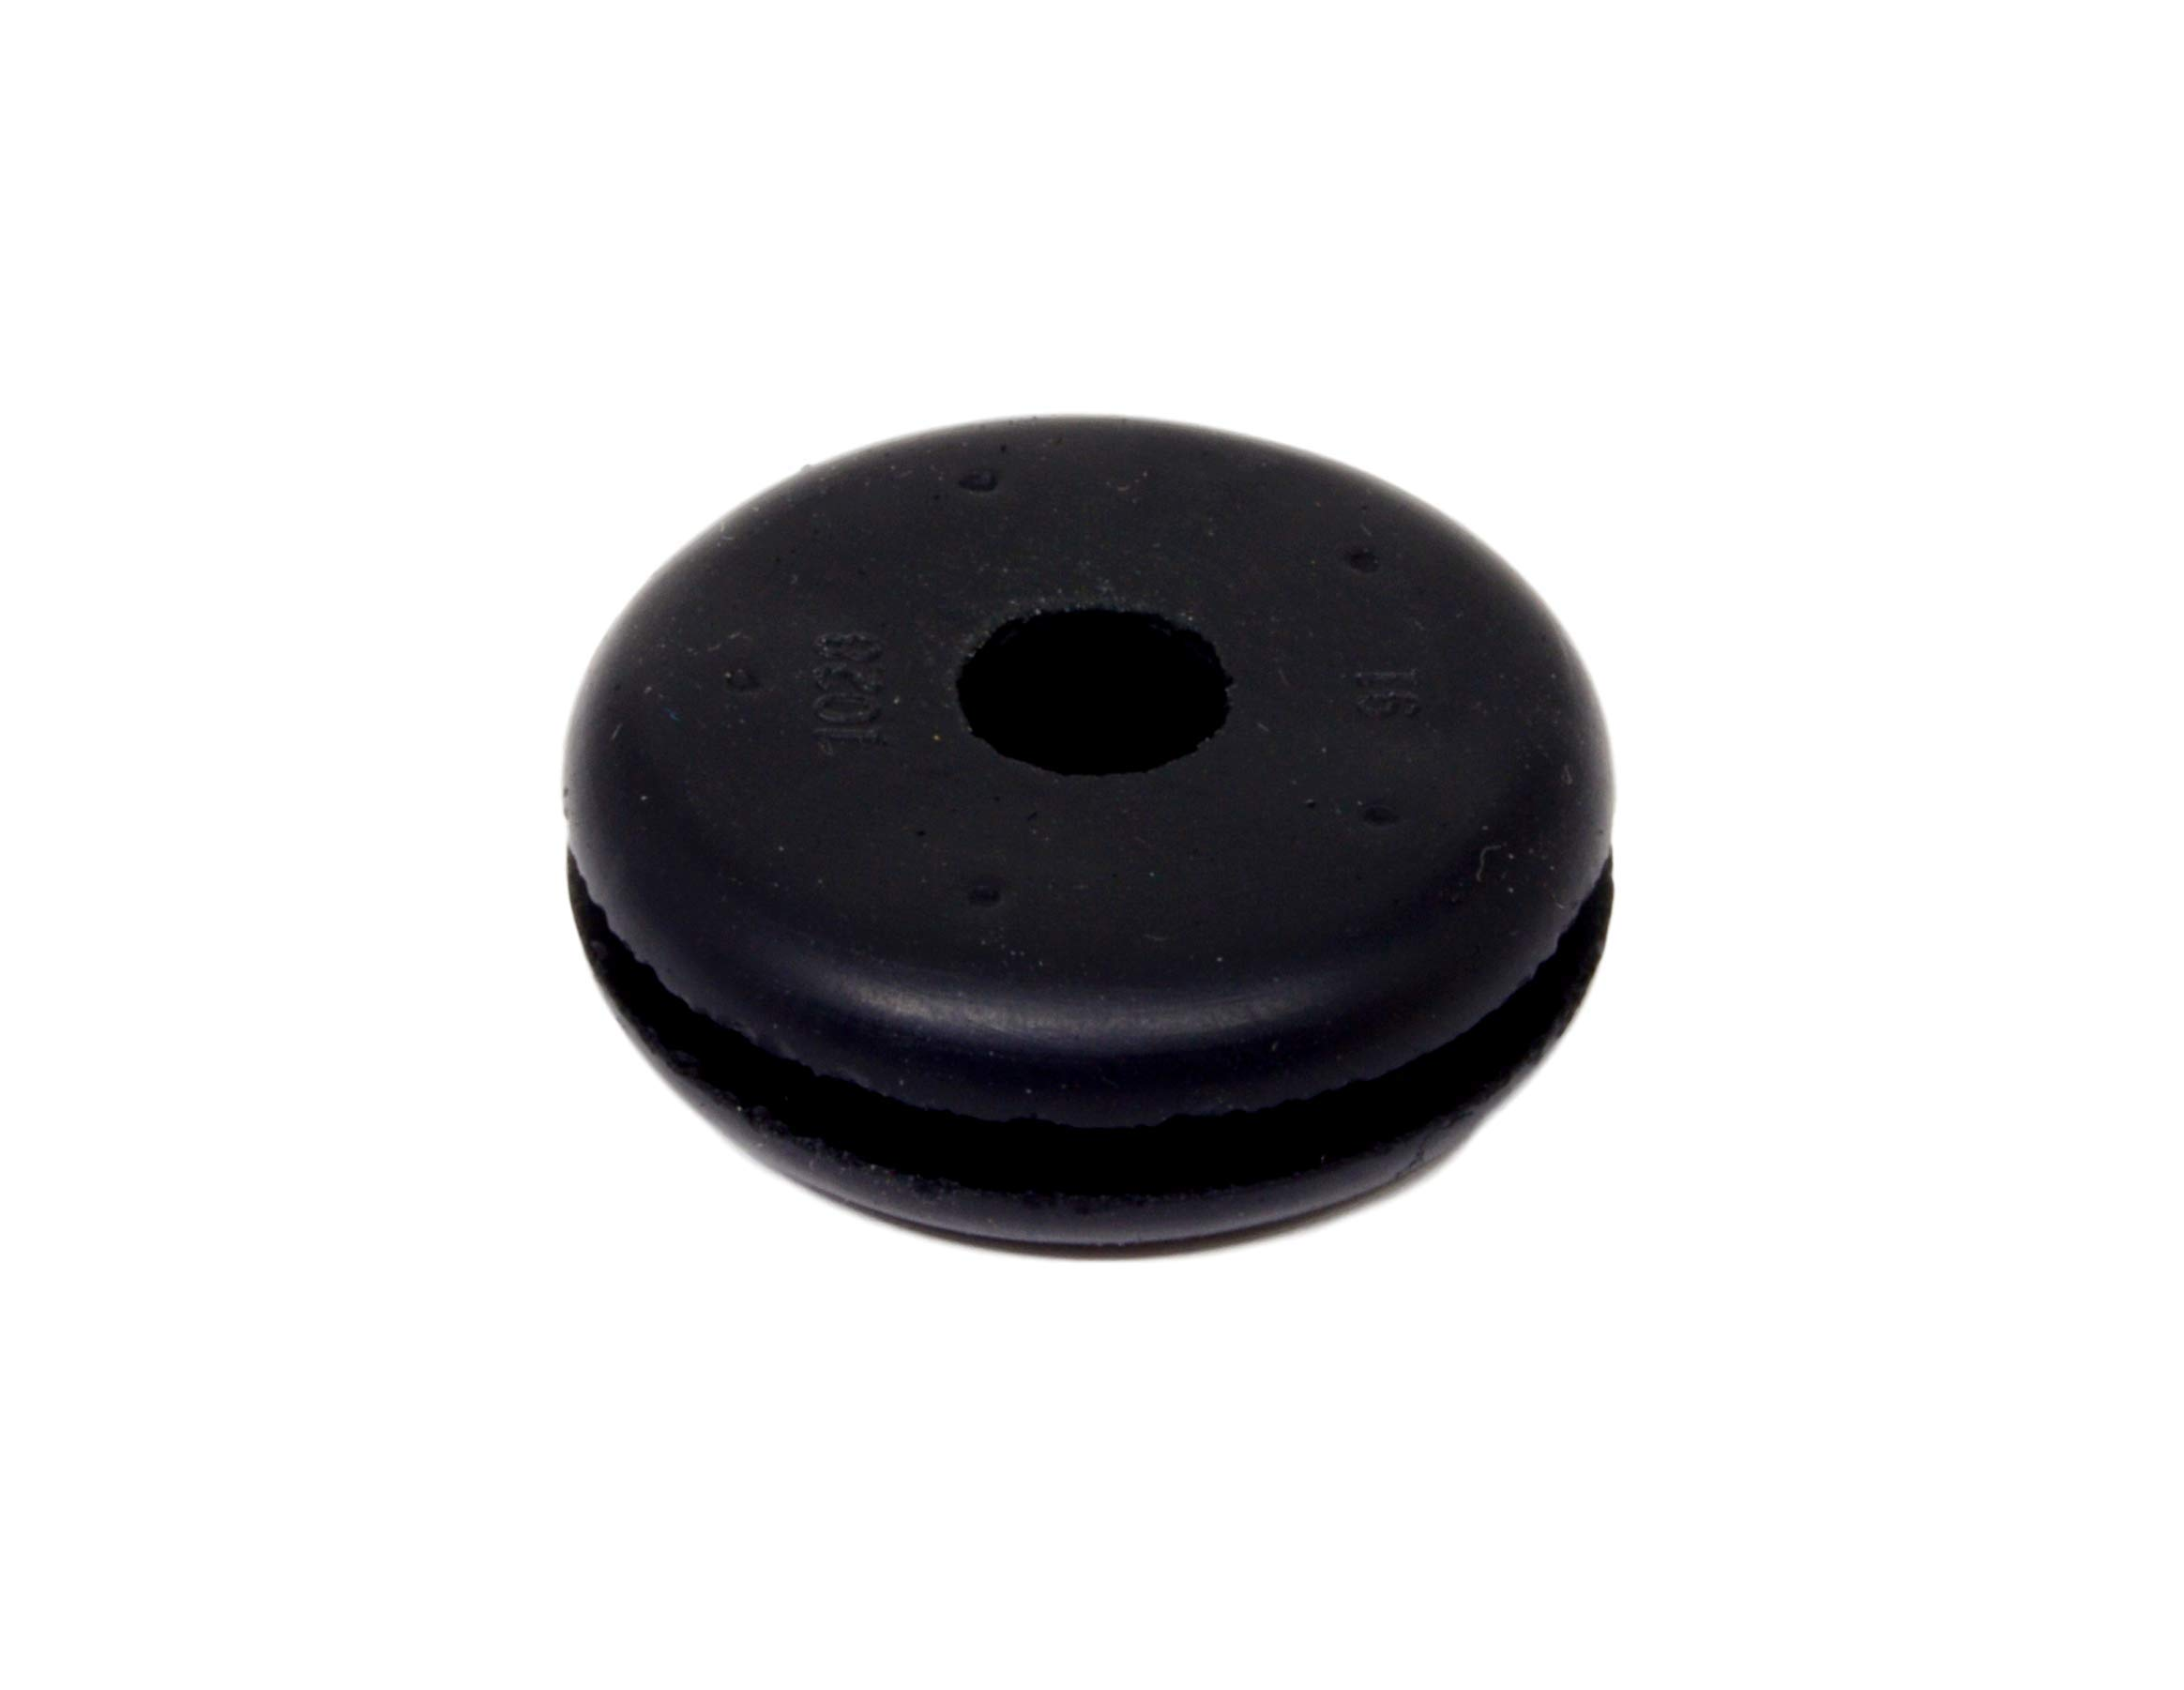 Rubber Grommet Fits 7/8'' Panel Hole in 3/32'' Thick Panel Has 9/32'' Inch Center Opening RGR93278